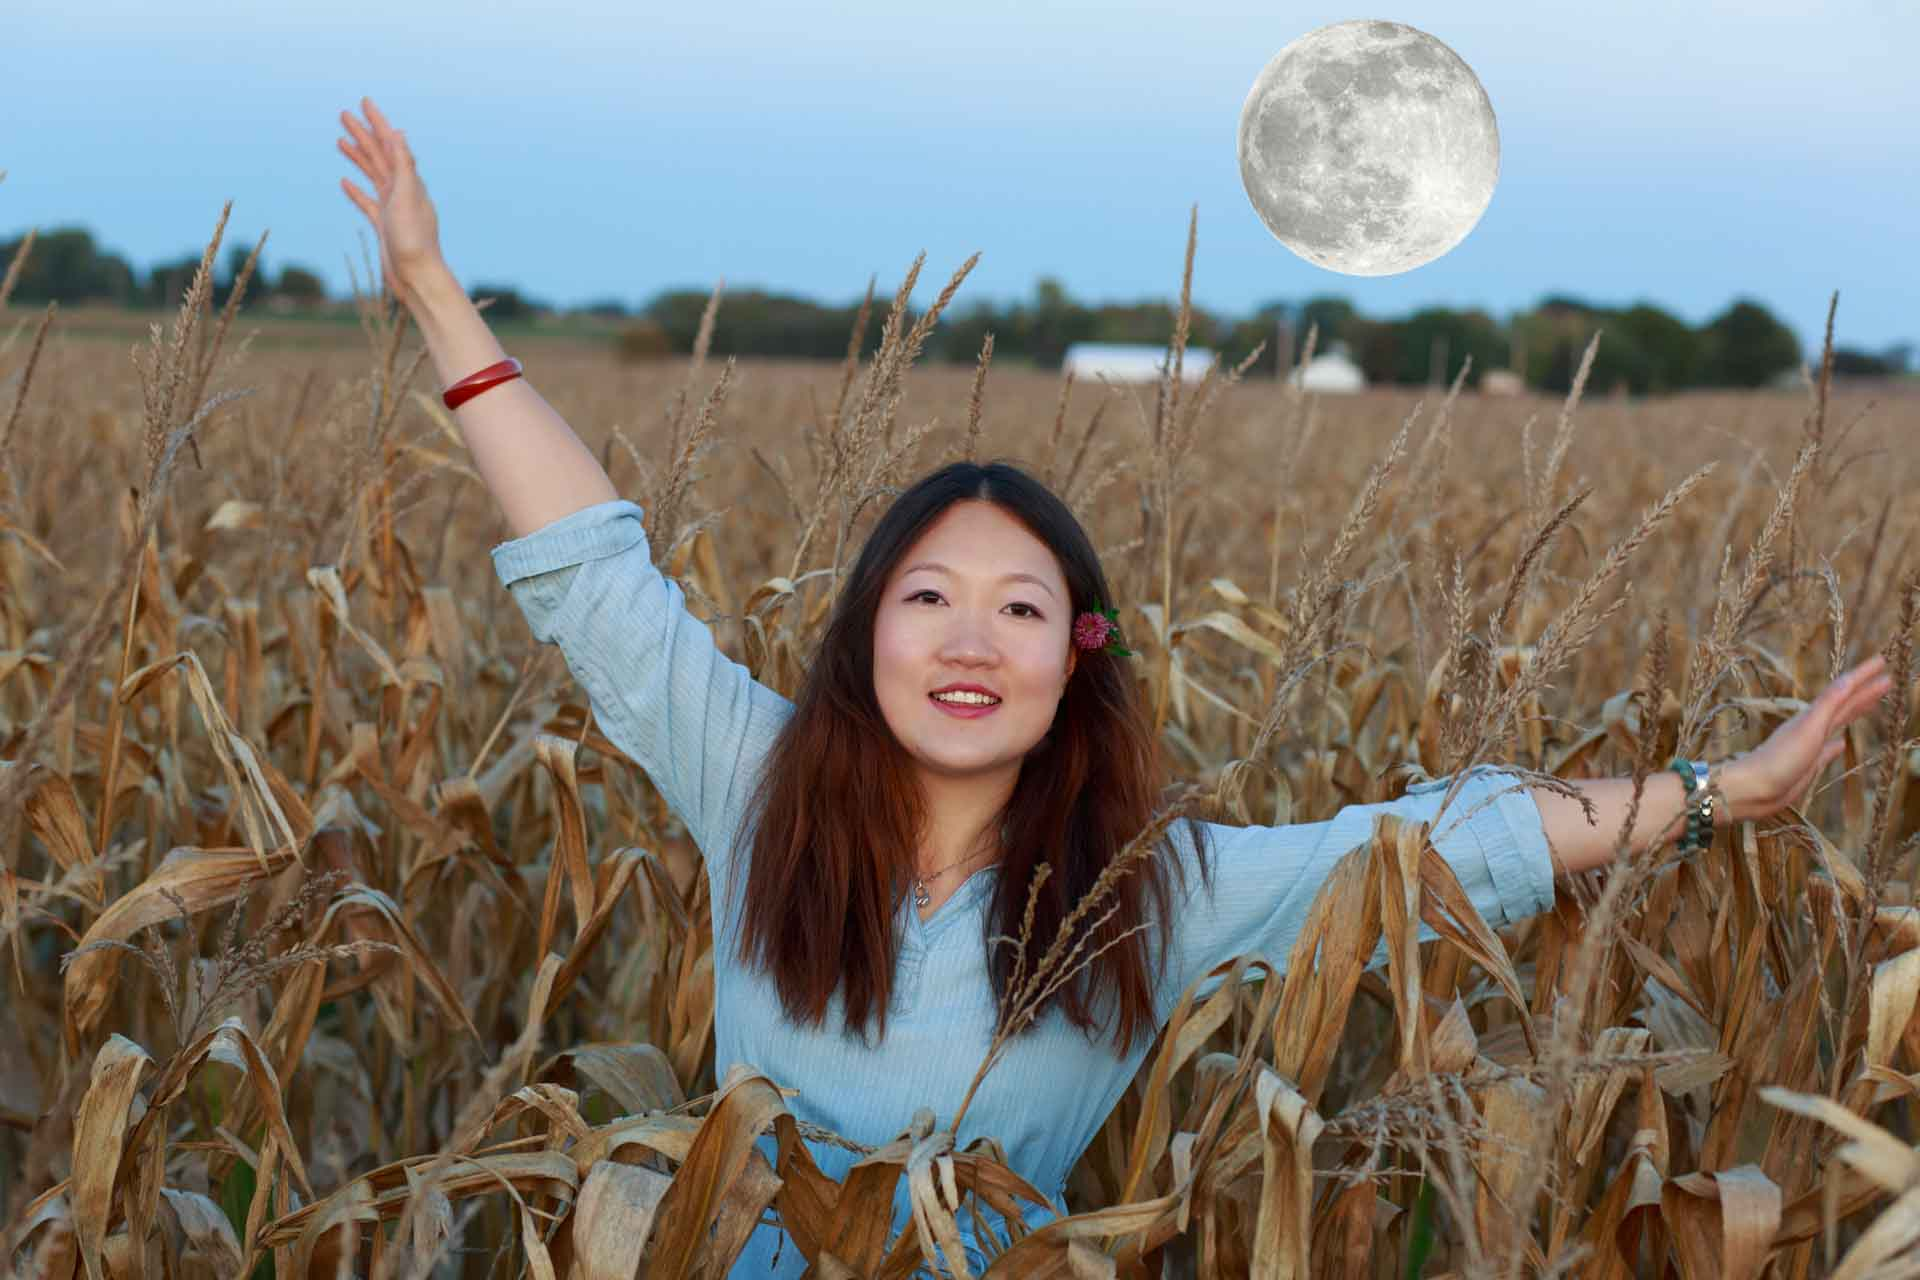 Moonrise over the corn field